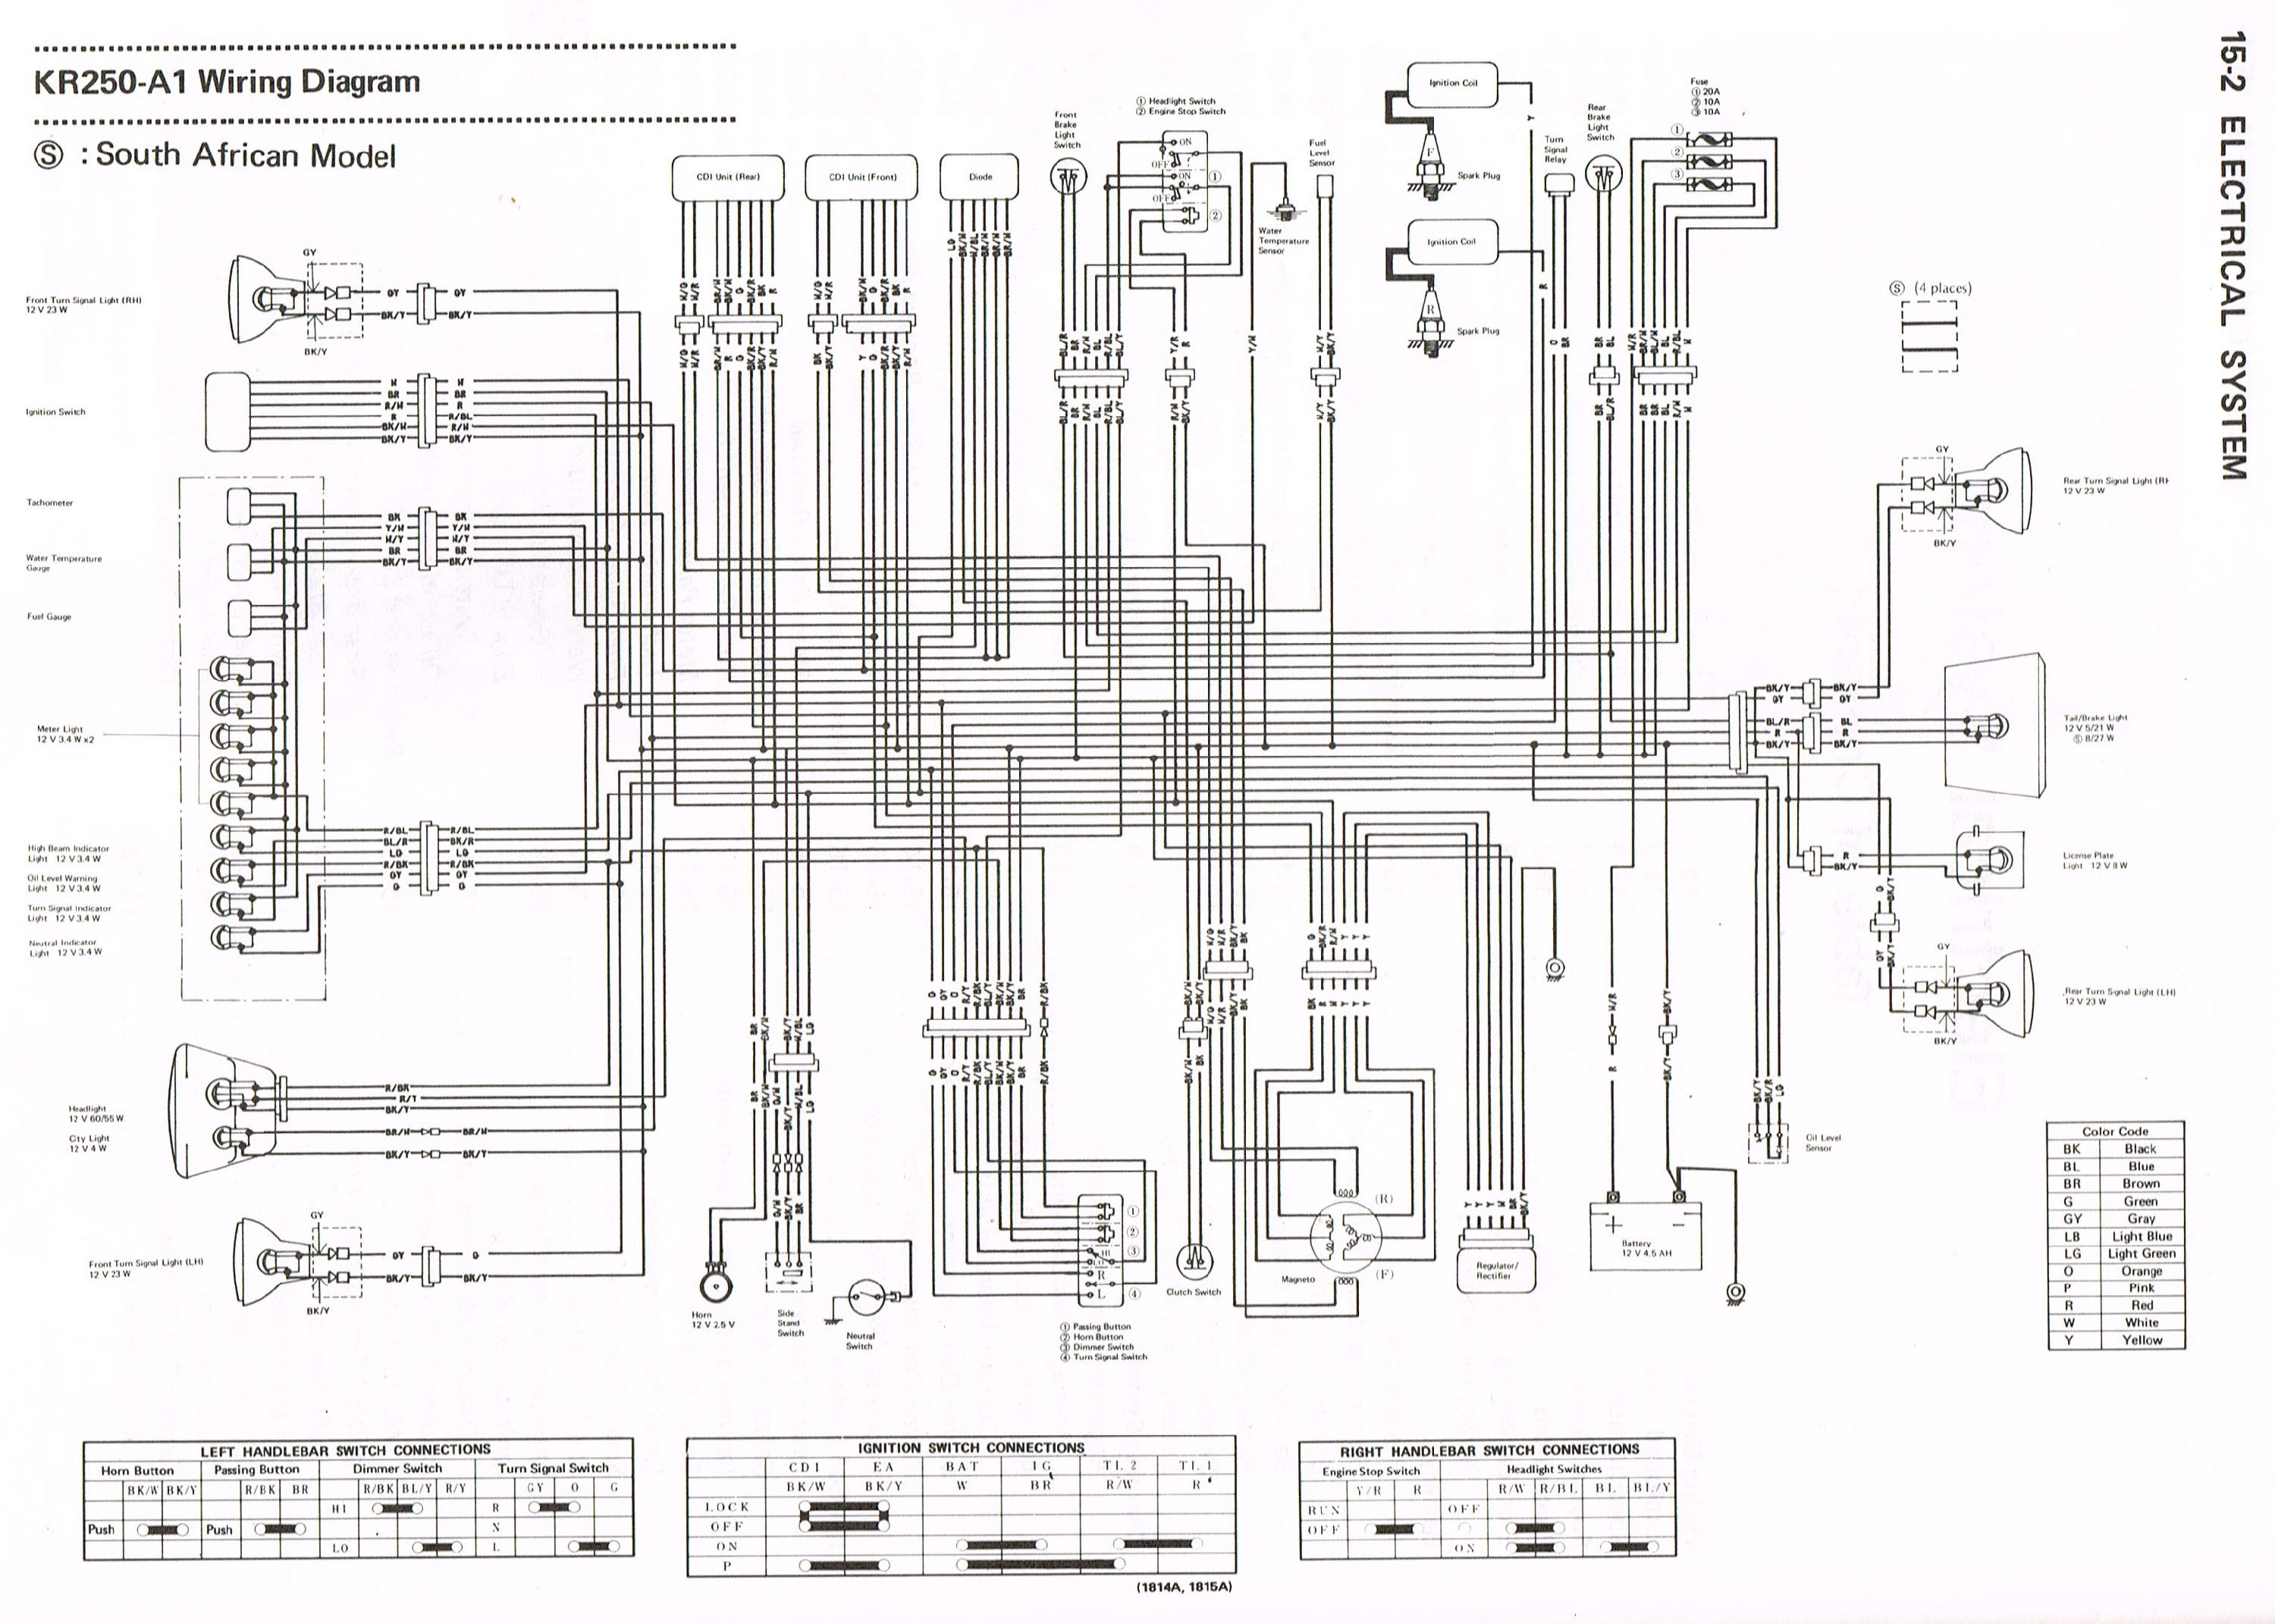 KR_electrics_big kz550 wiring diagram kz550 wiring diagram at edmiracle.co